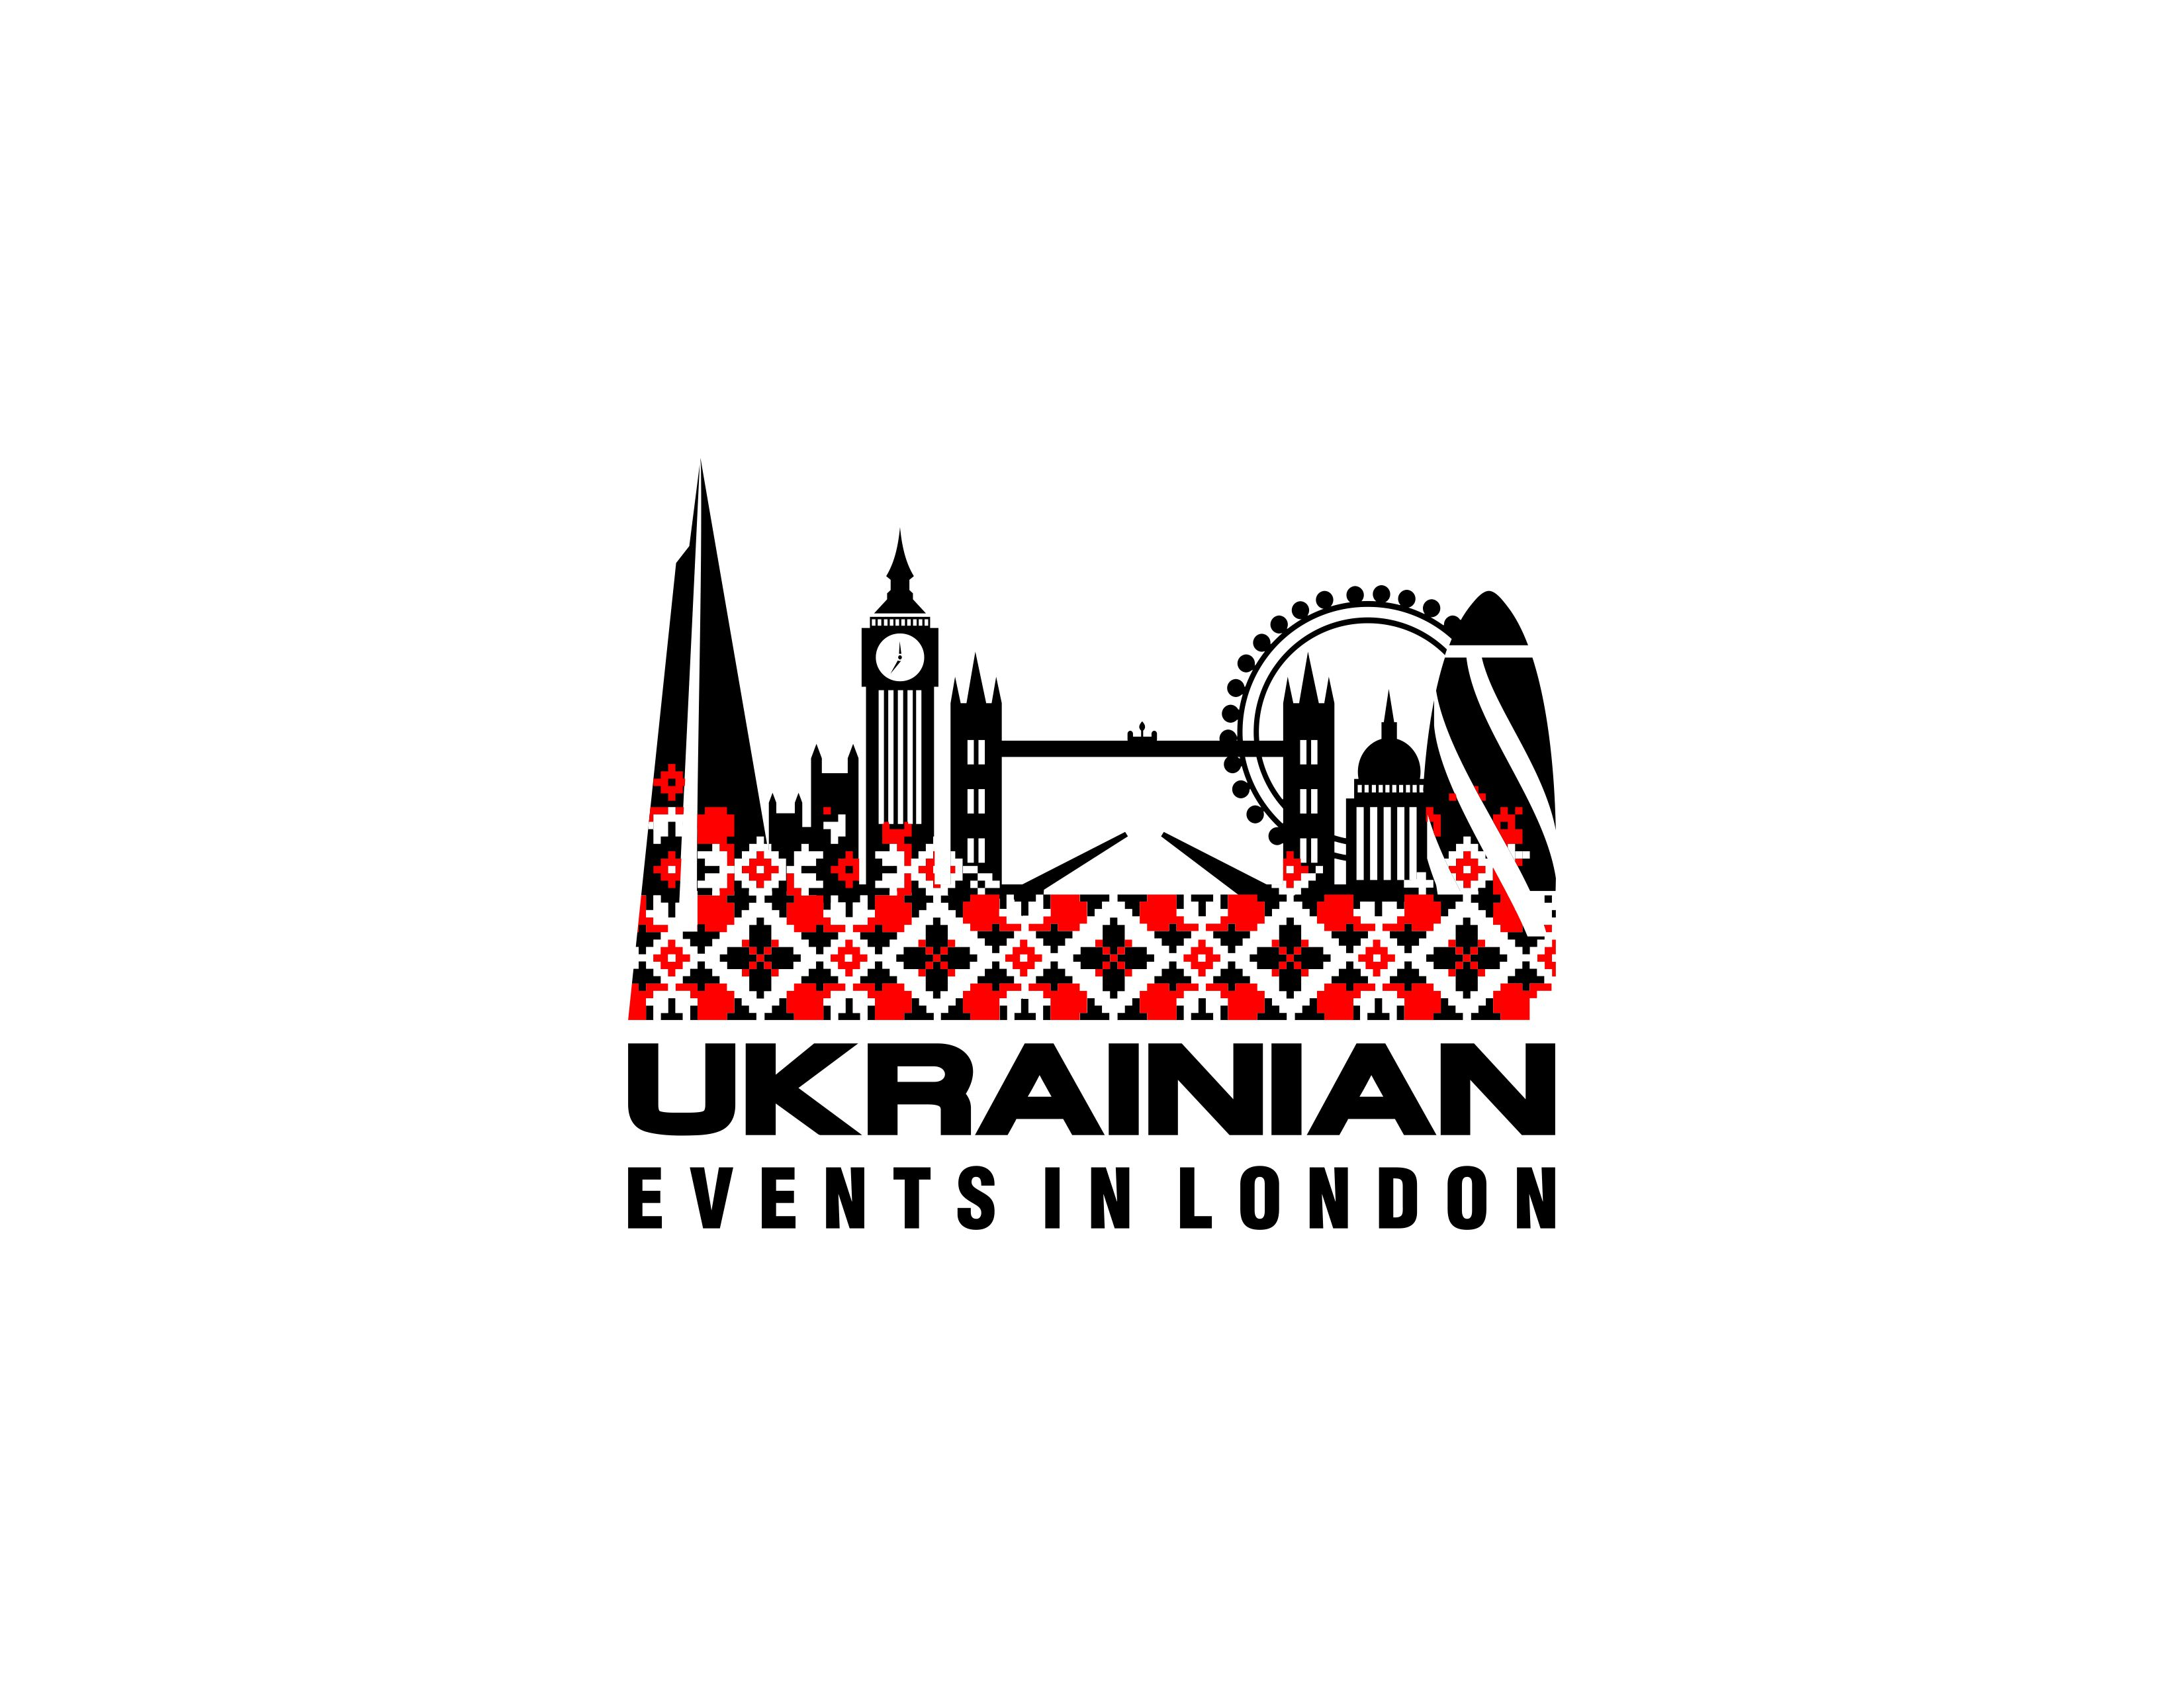 Ukrainian Events in London